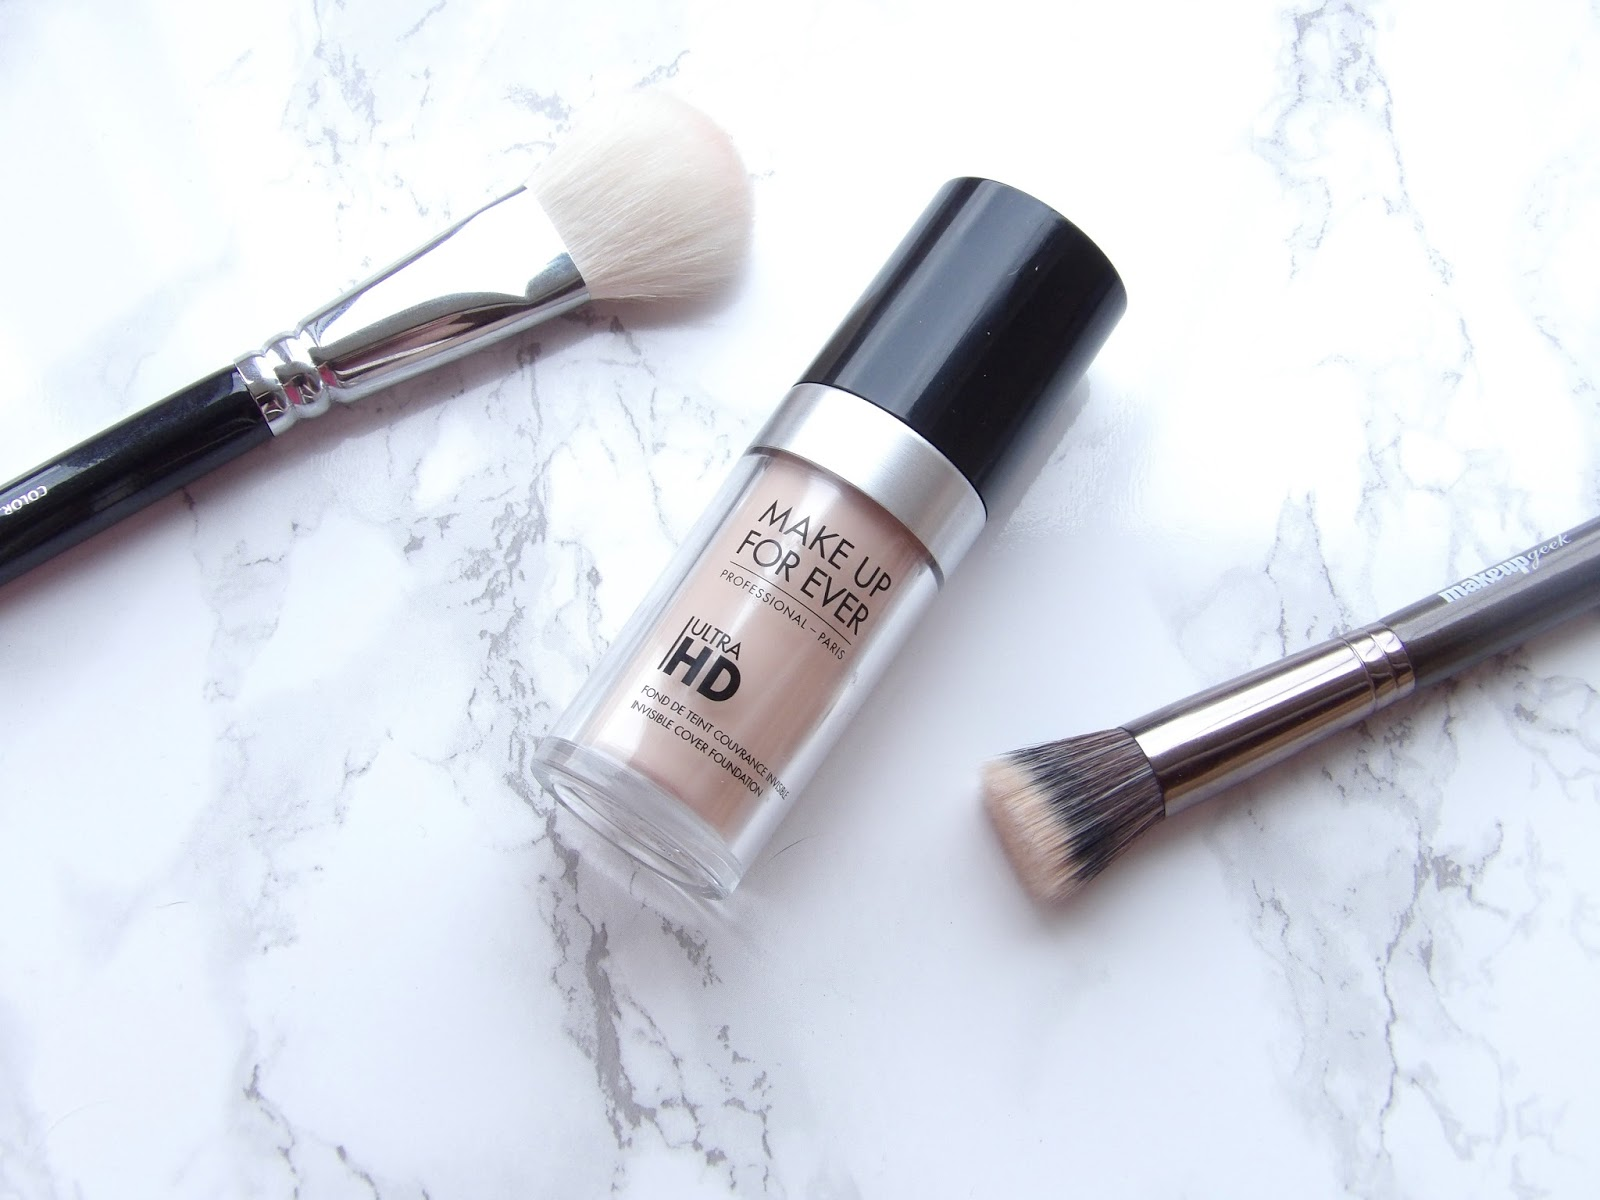 MAKE UP FOR EVER ULTRA HD FOUNDATION | REVIEW + SWATCHES